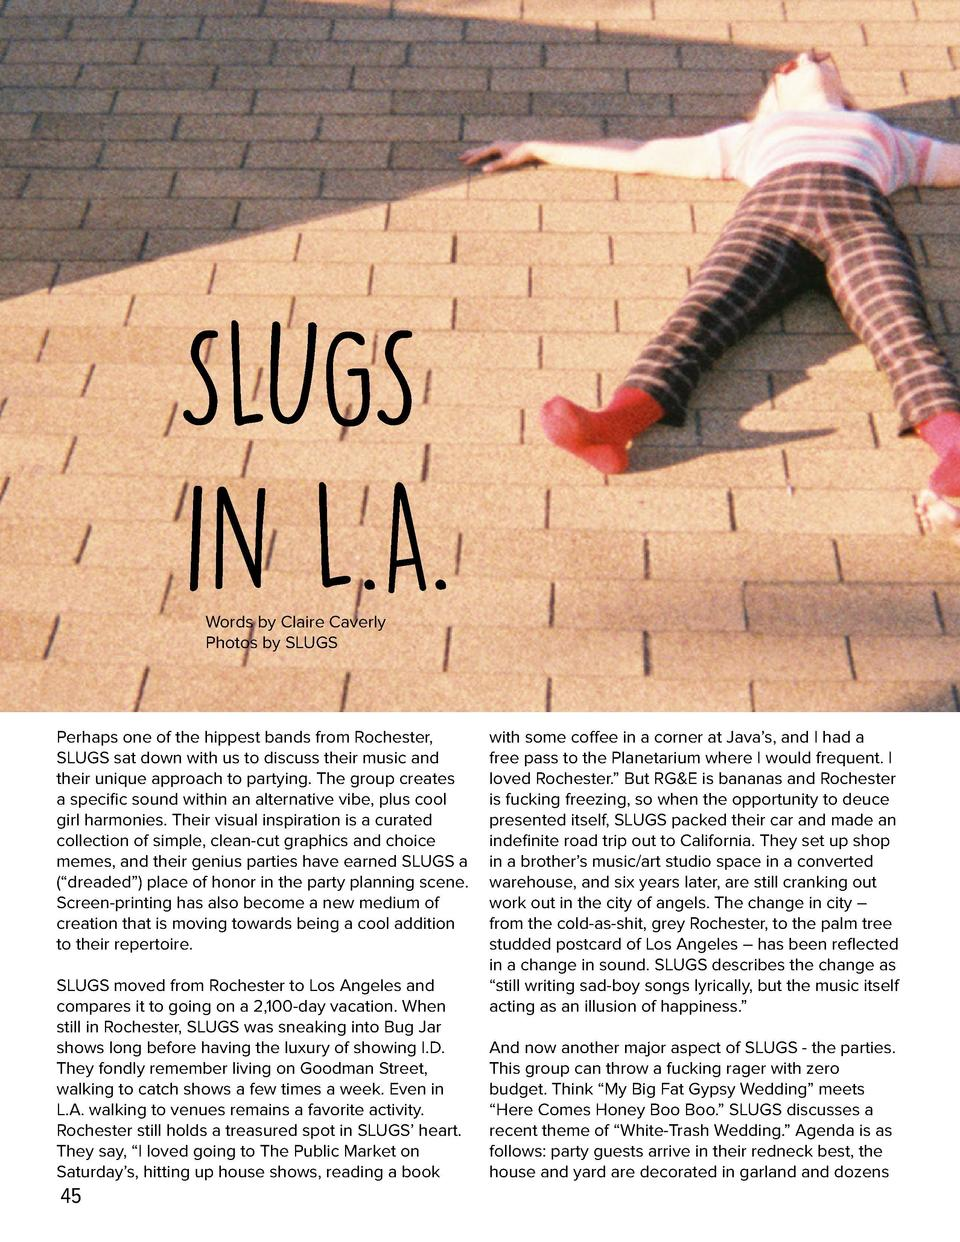 SLUGS in L.A. Words by Claire Caverly Photos by SLUGS  Perhaps one of the hippest bands from Rochester, SLUGS sat down wit...